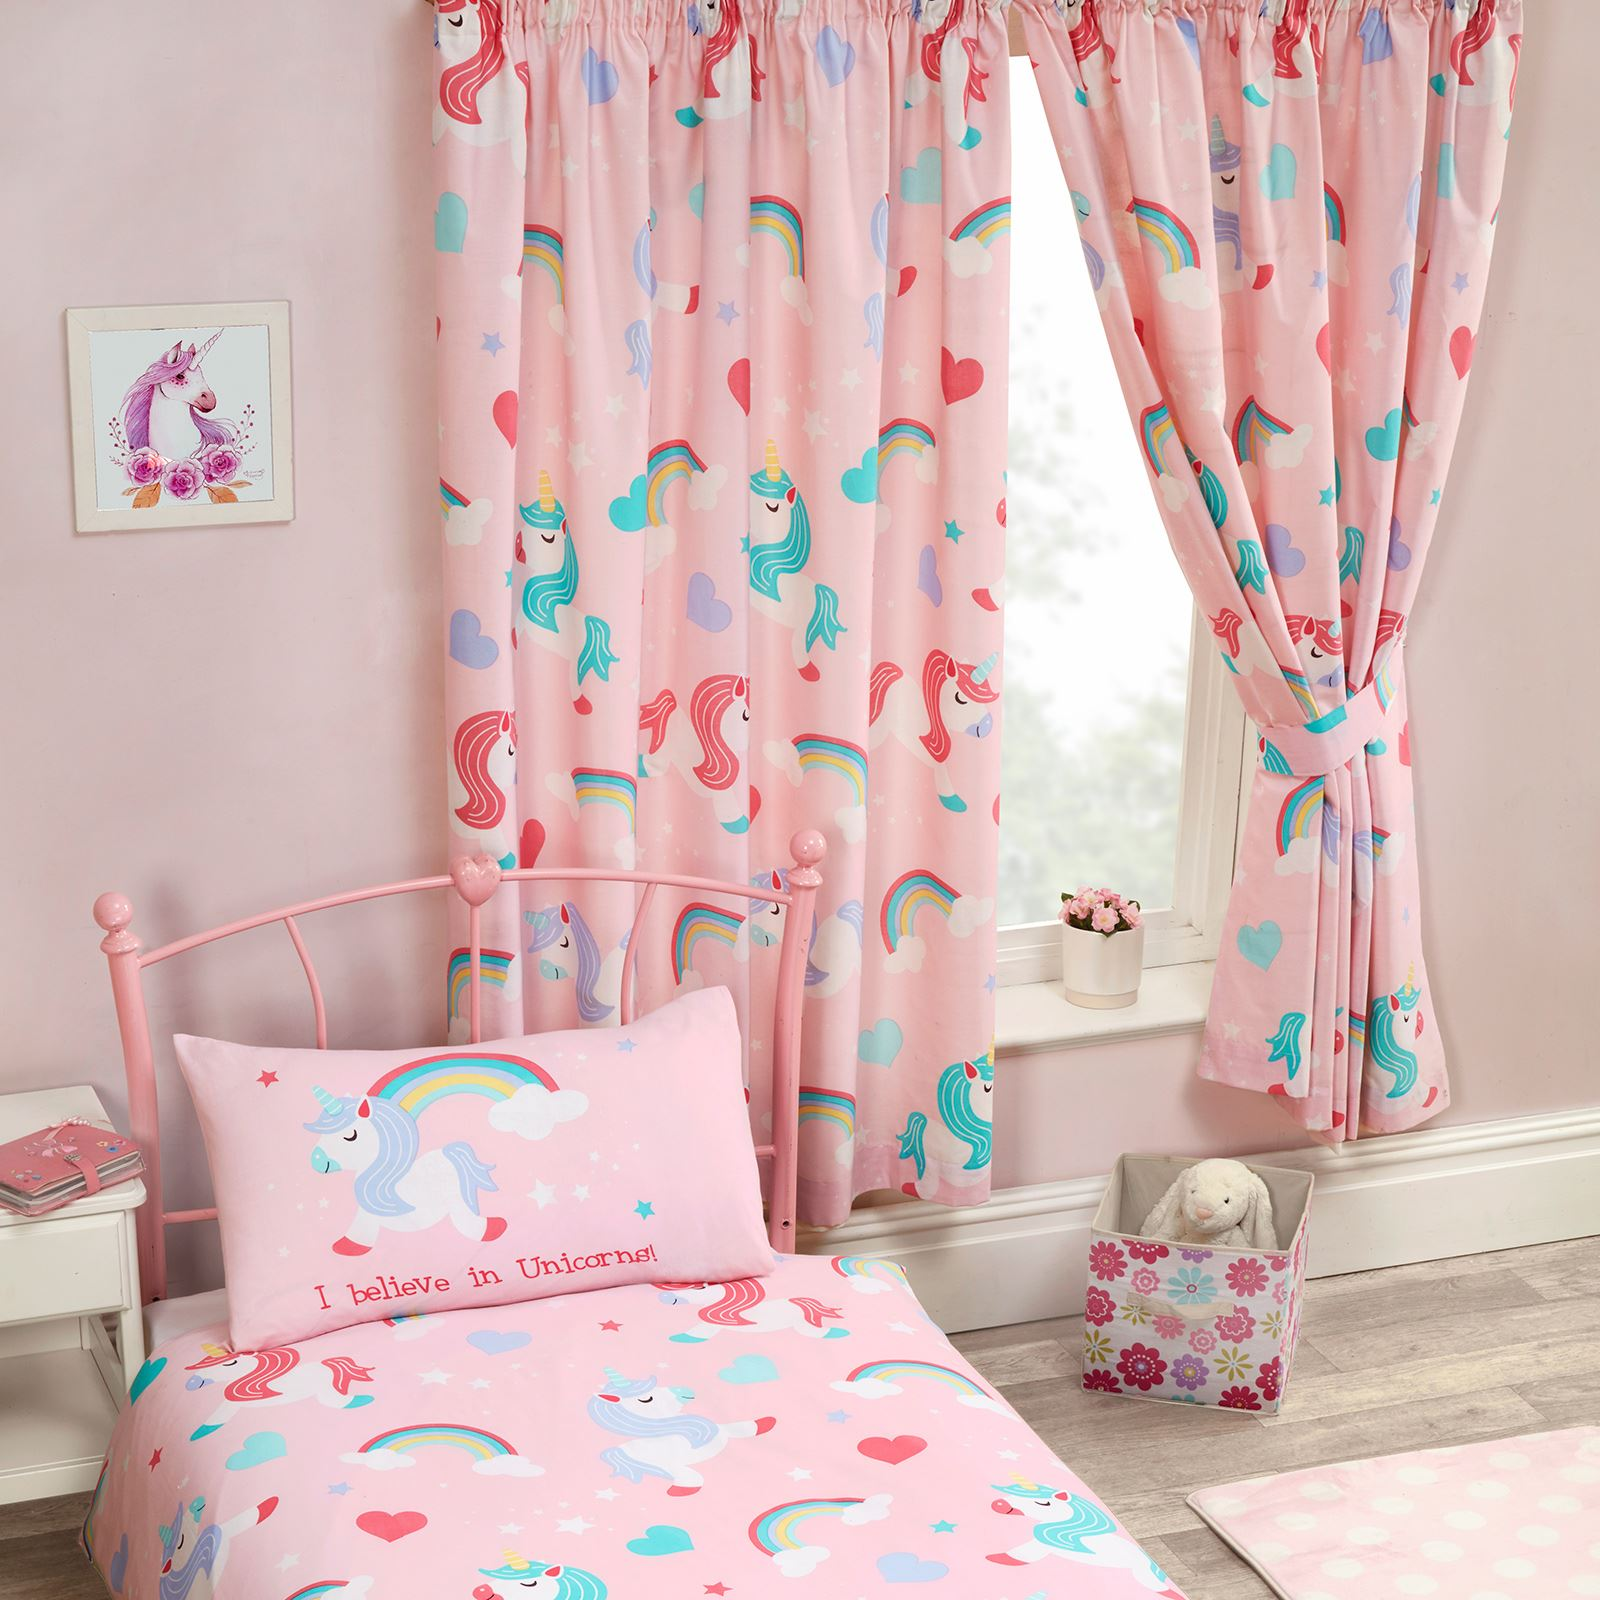 Girls Bedroom Curtains 66 X 72 Unicorns Ponies Flamingos